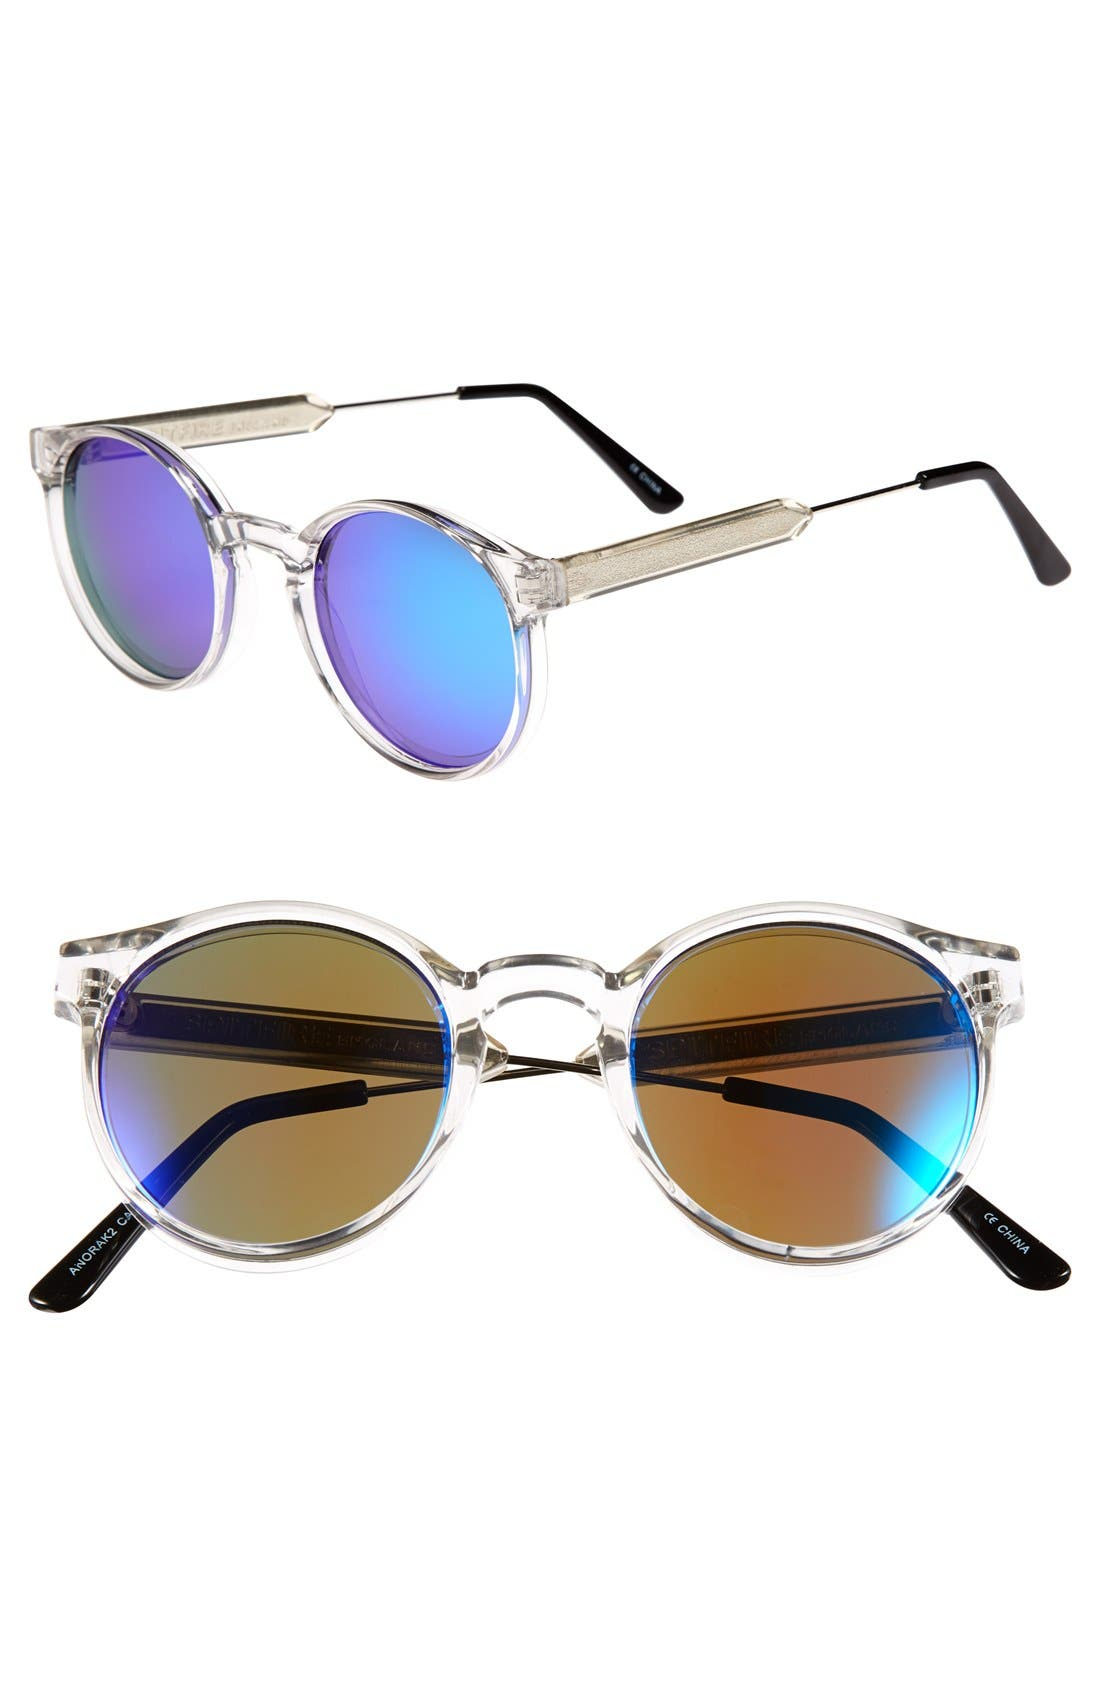 Main Image - Spitfire 47mm Retro Sunglasses